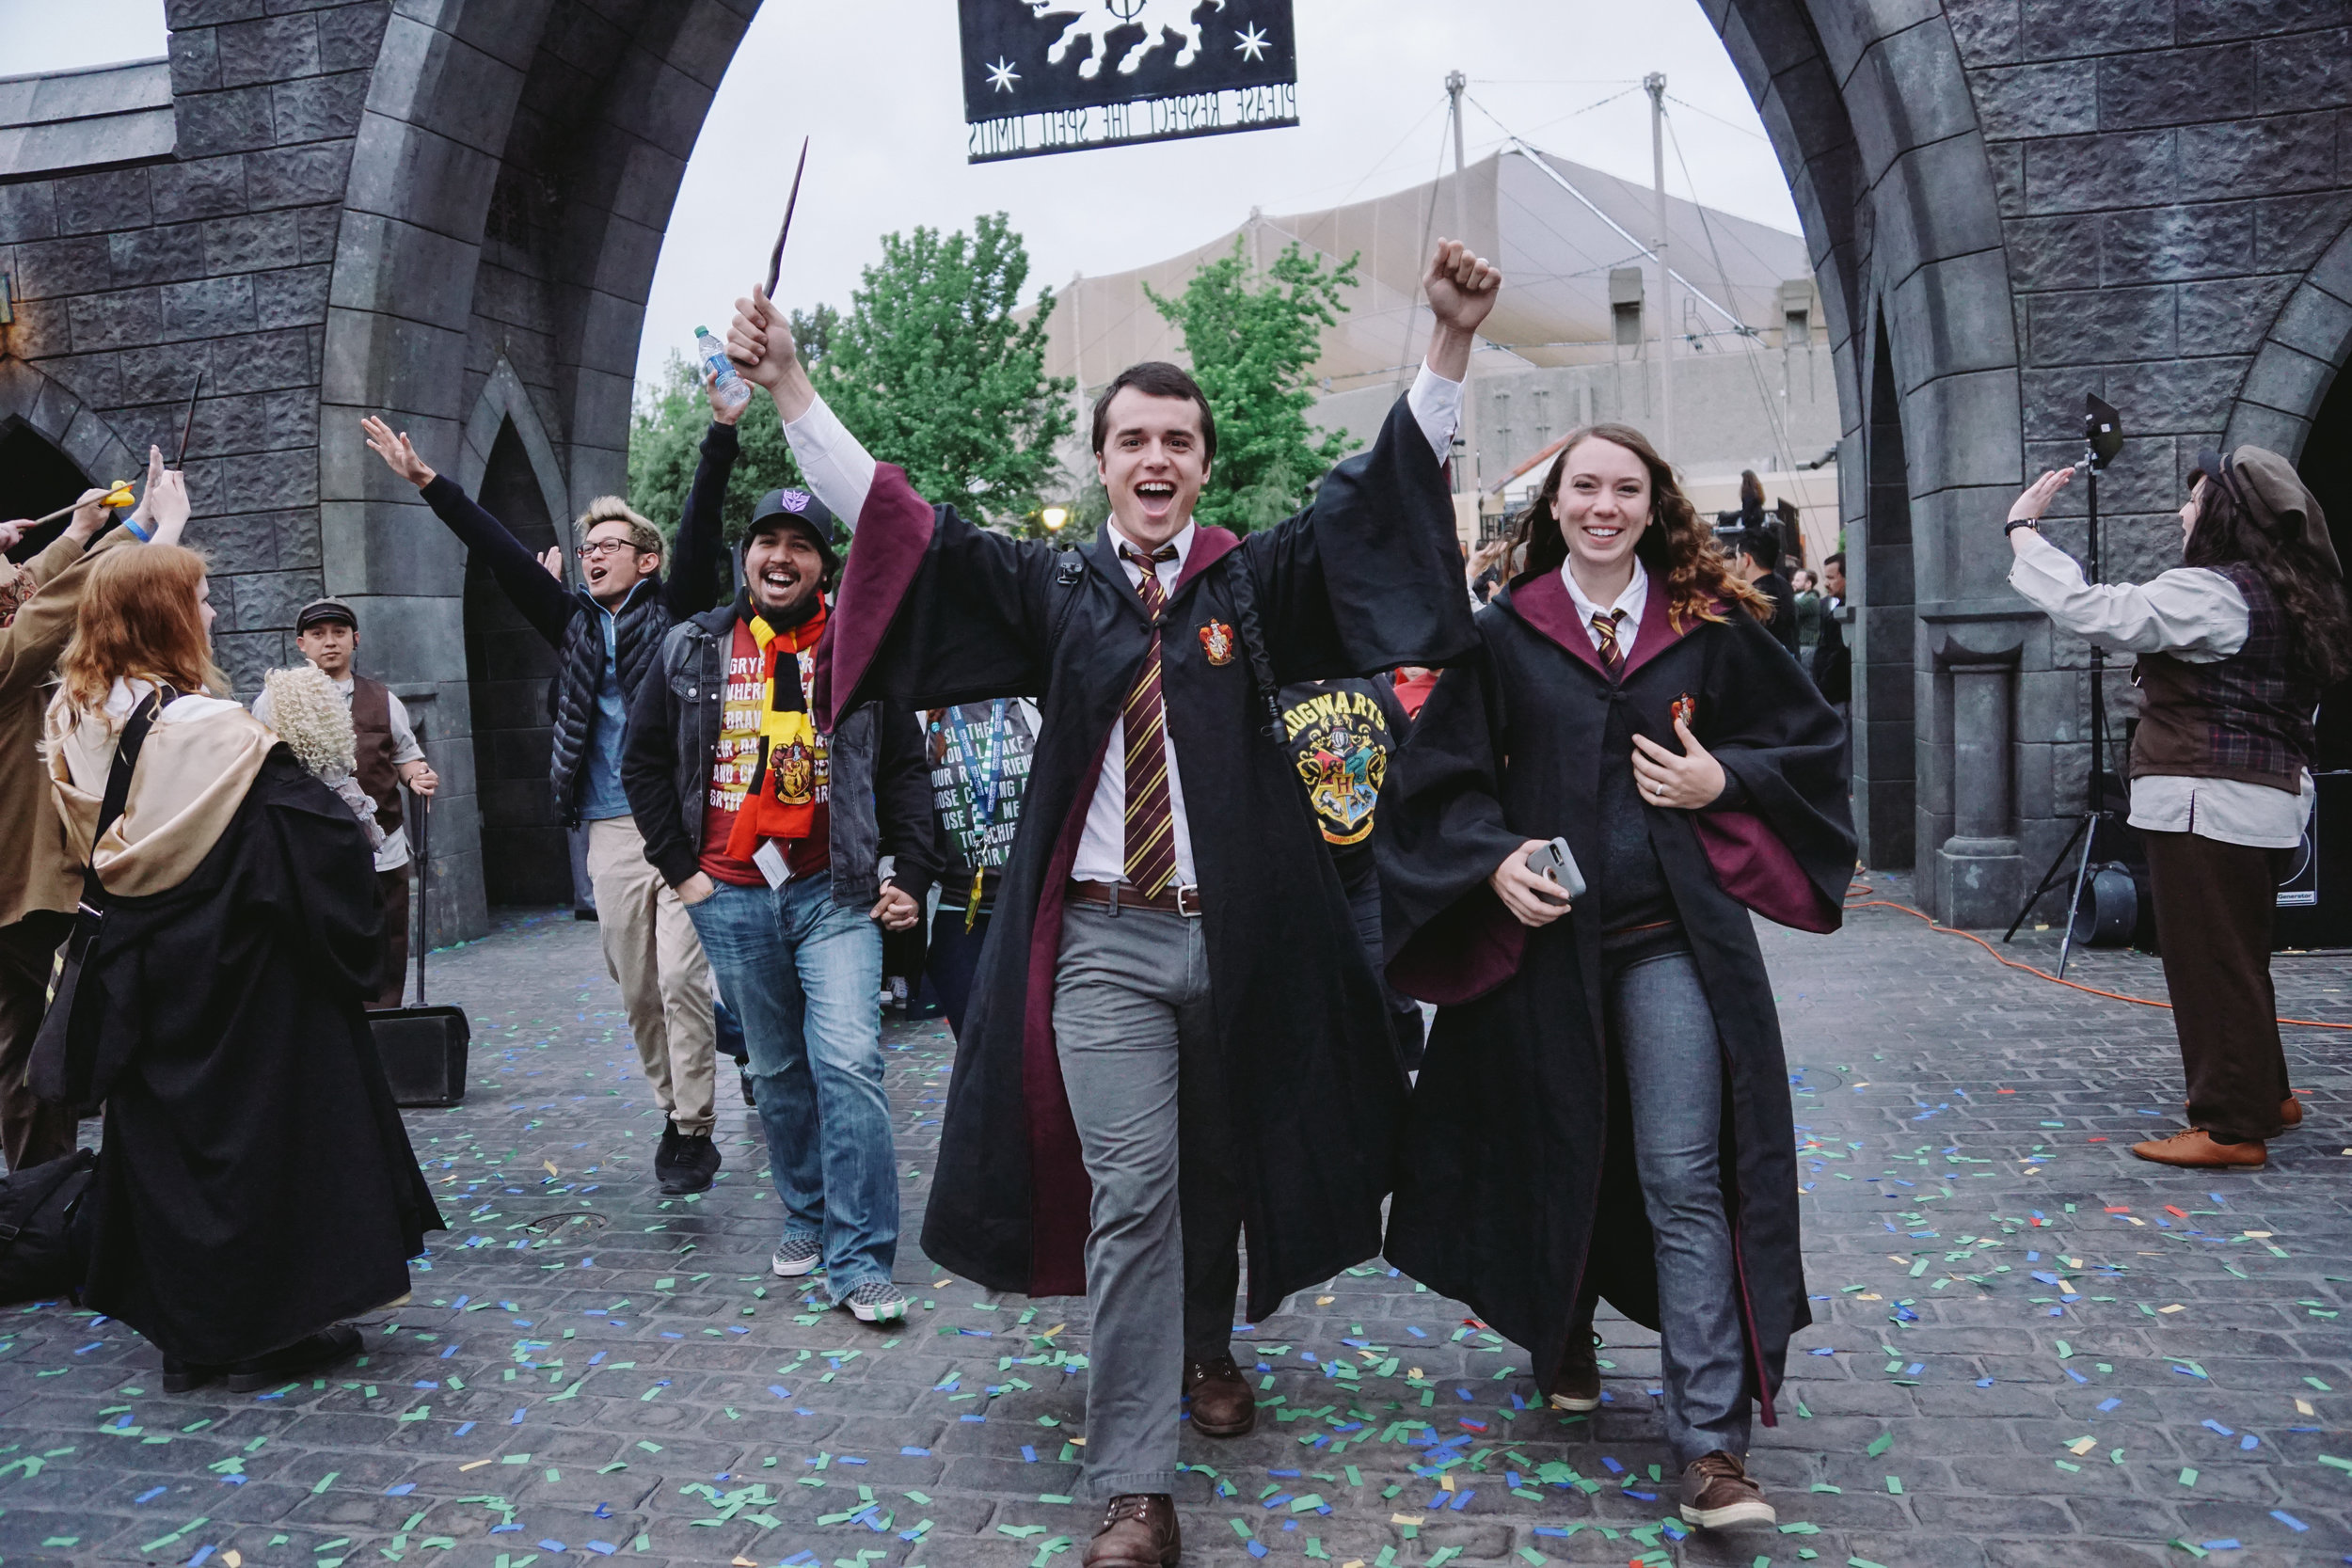 HarryPotterOpening-01249.jpg